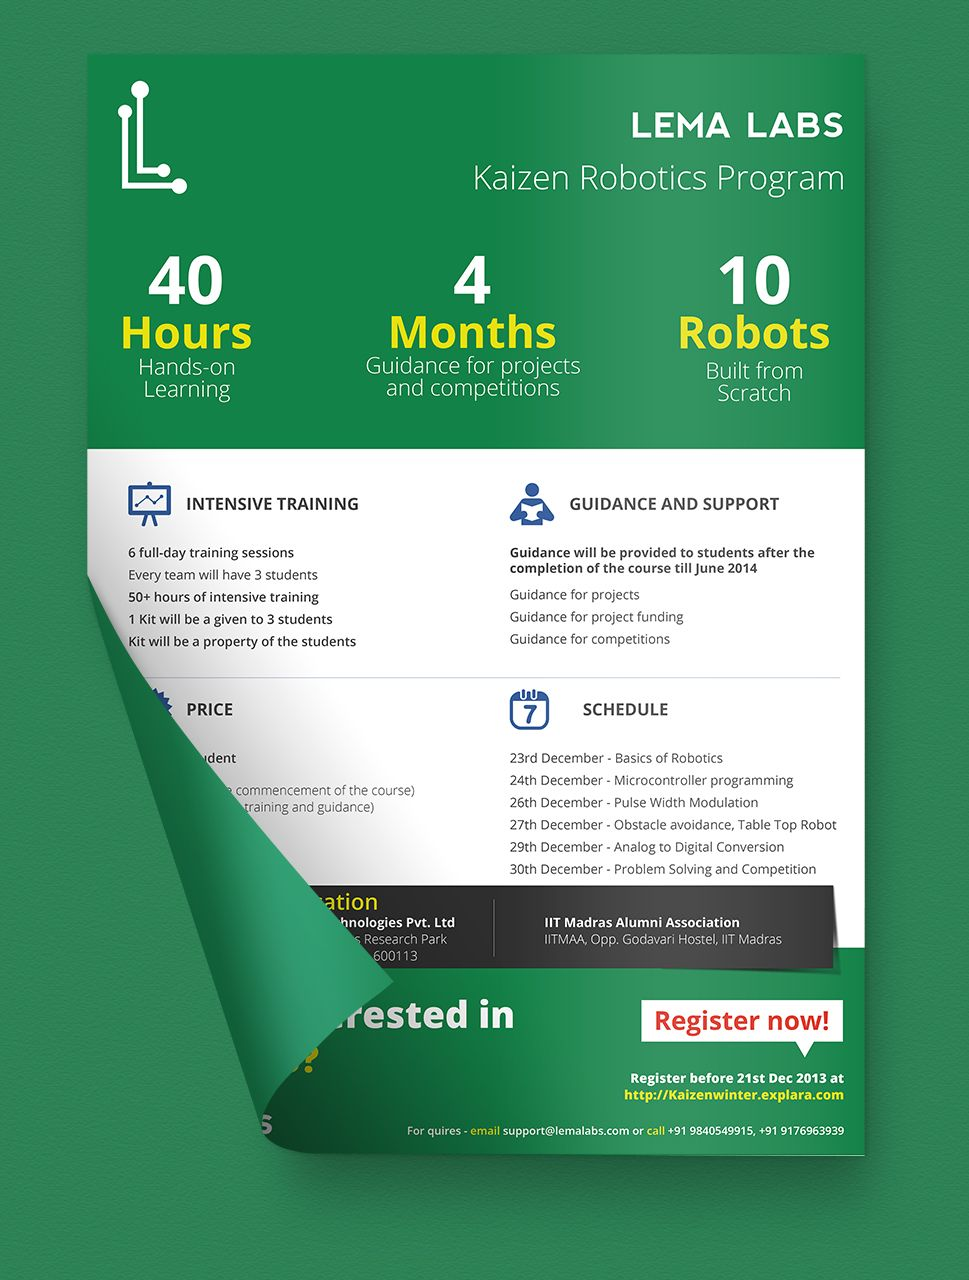 Poster design kit - Corporate Style Poster Design For Lema Labs Designed By Webdefy Robotics Green